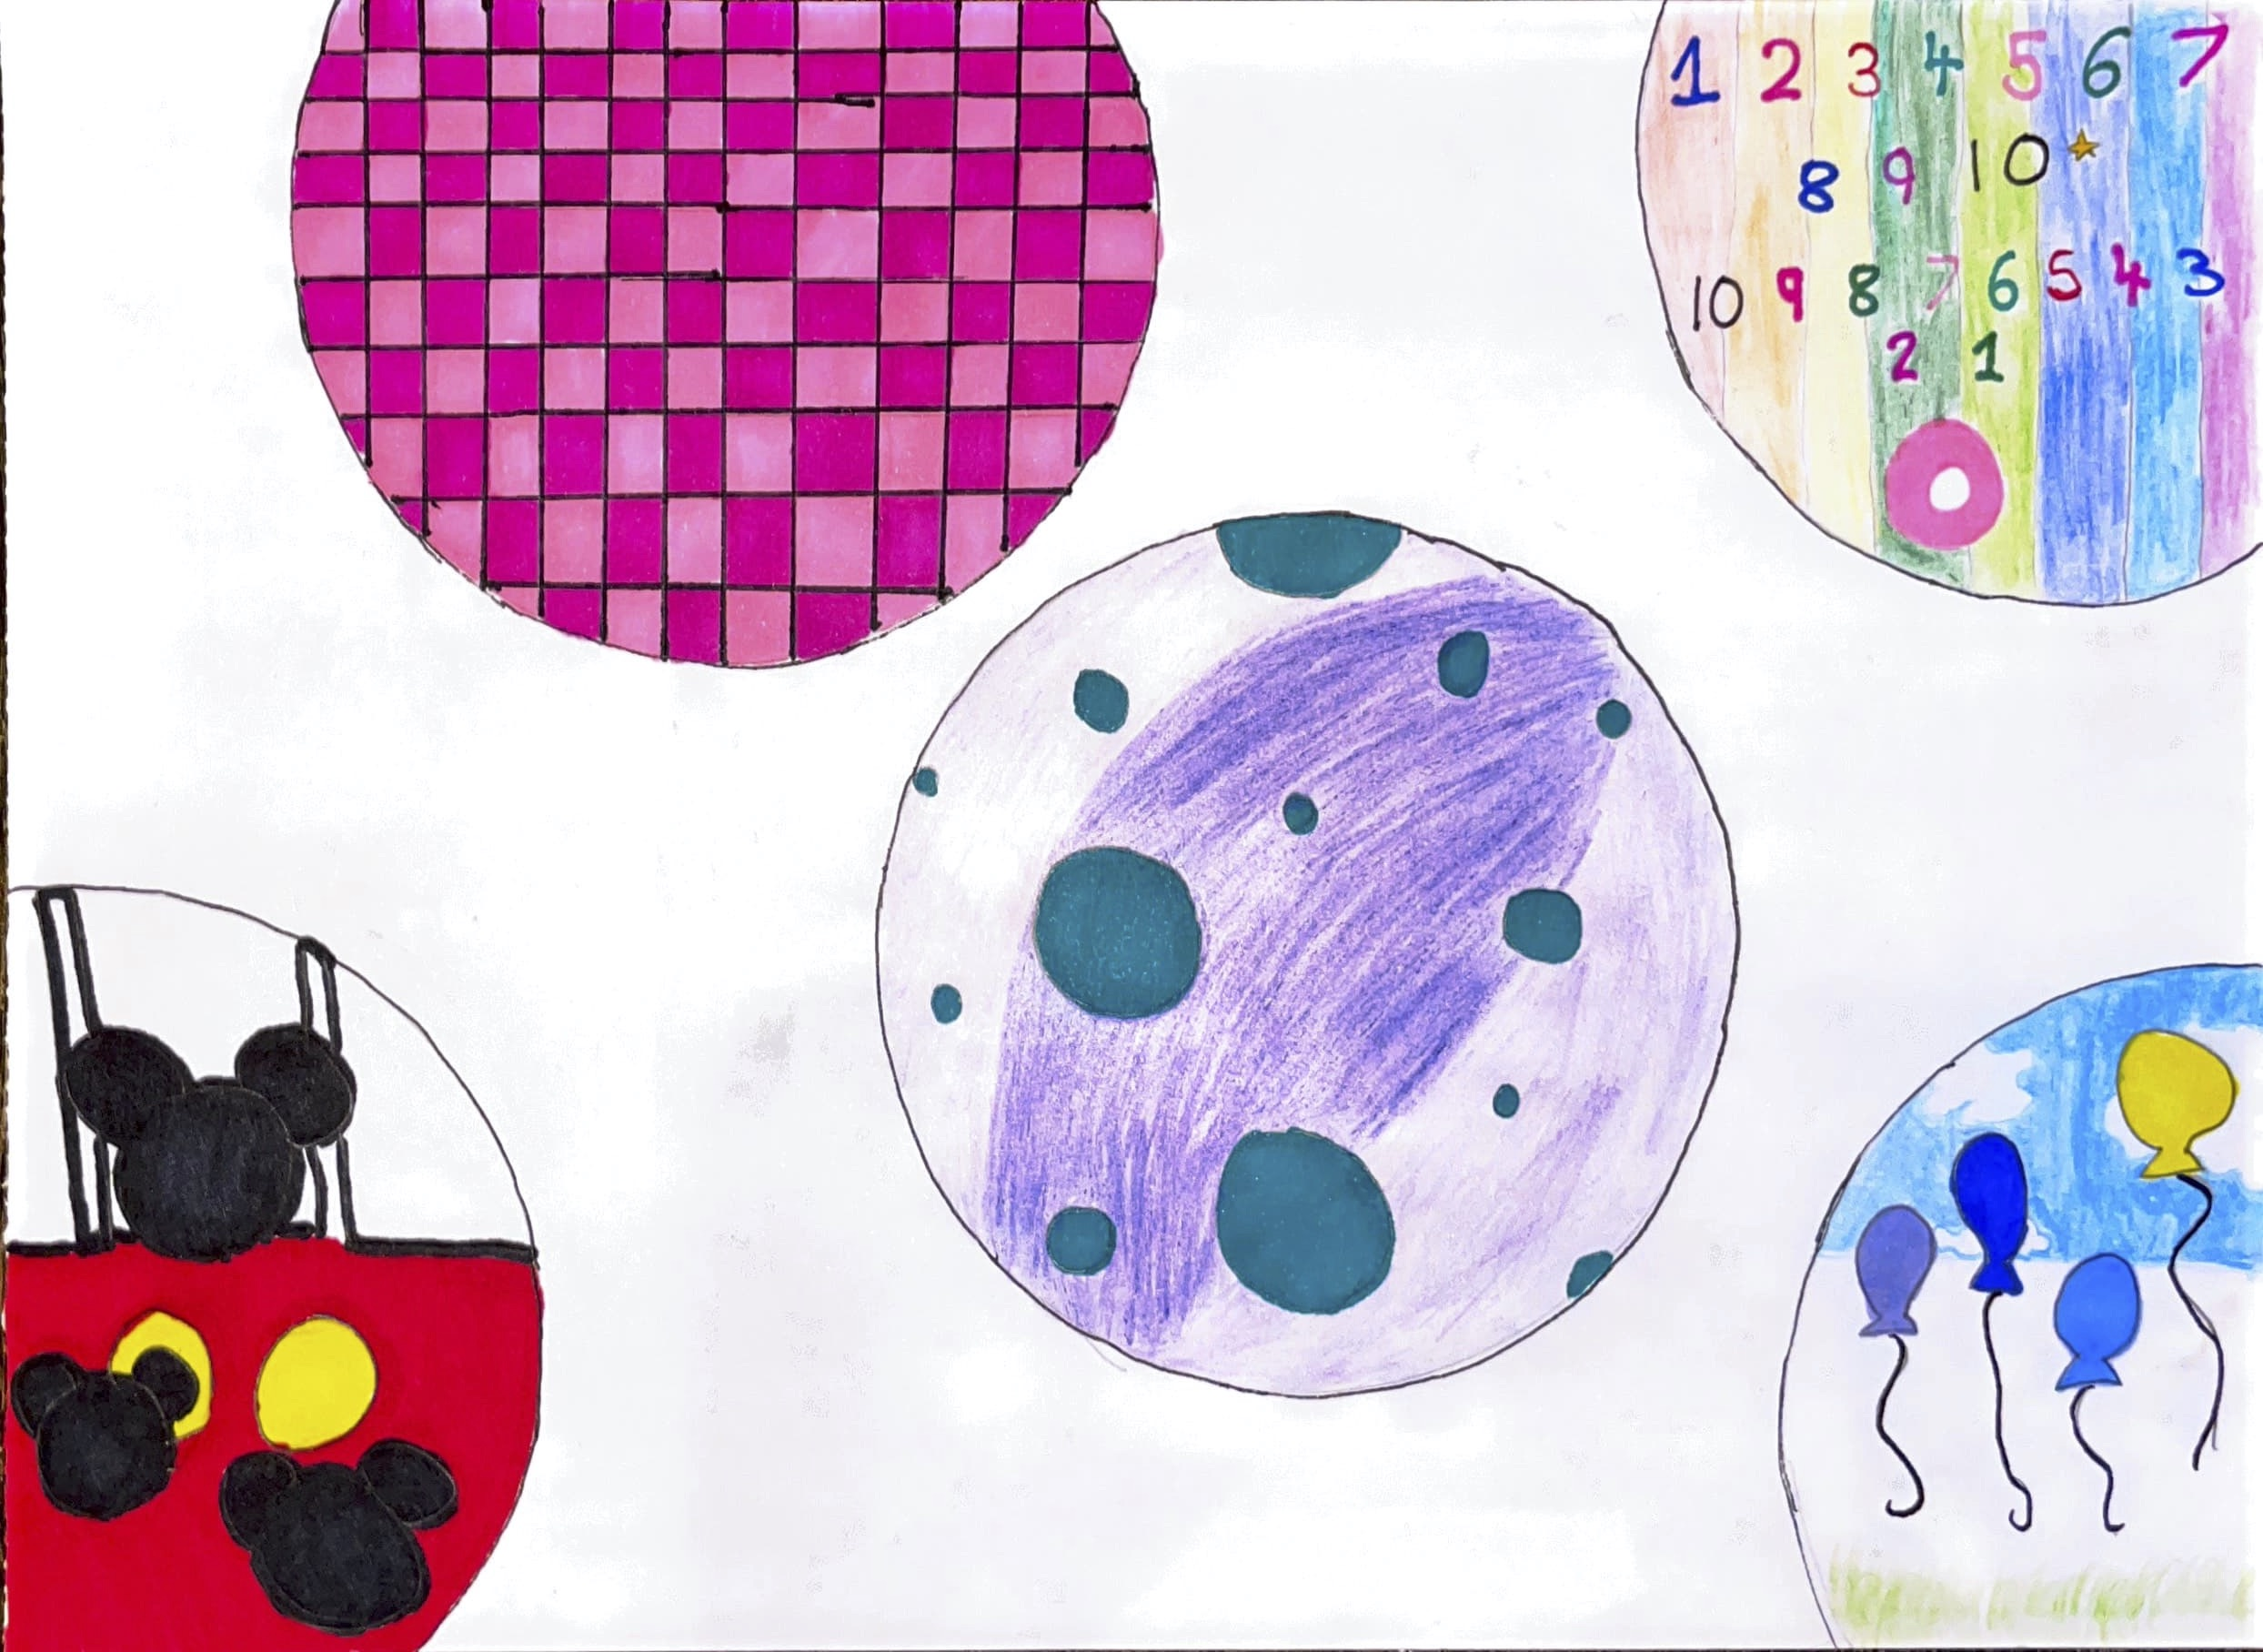 Drawing of different circles, each with different images and patterns - dark and light pink squares, numbers counting up and down to 10, balloons floating, mickey mouse ears and one with turquoise small circles in a large purple one.